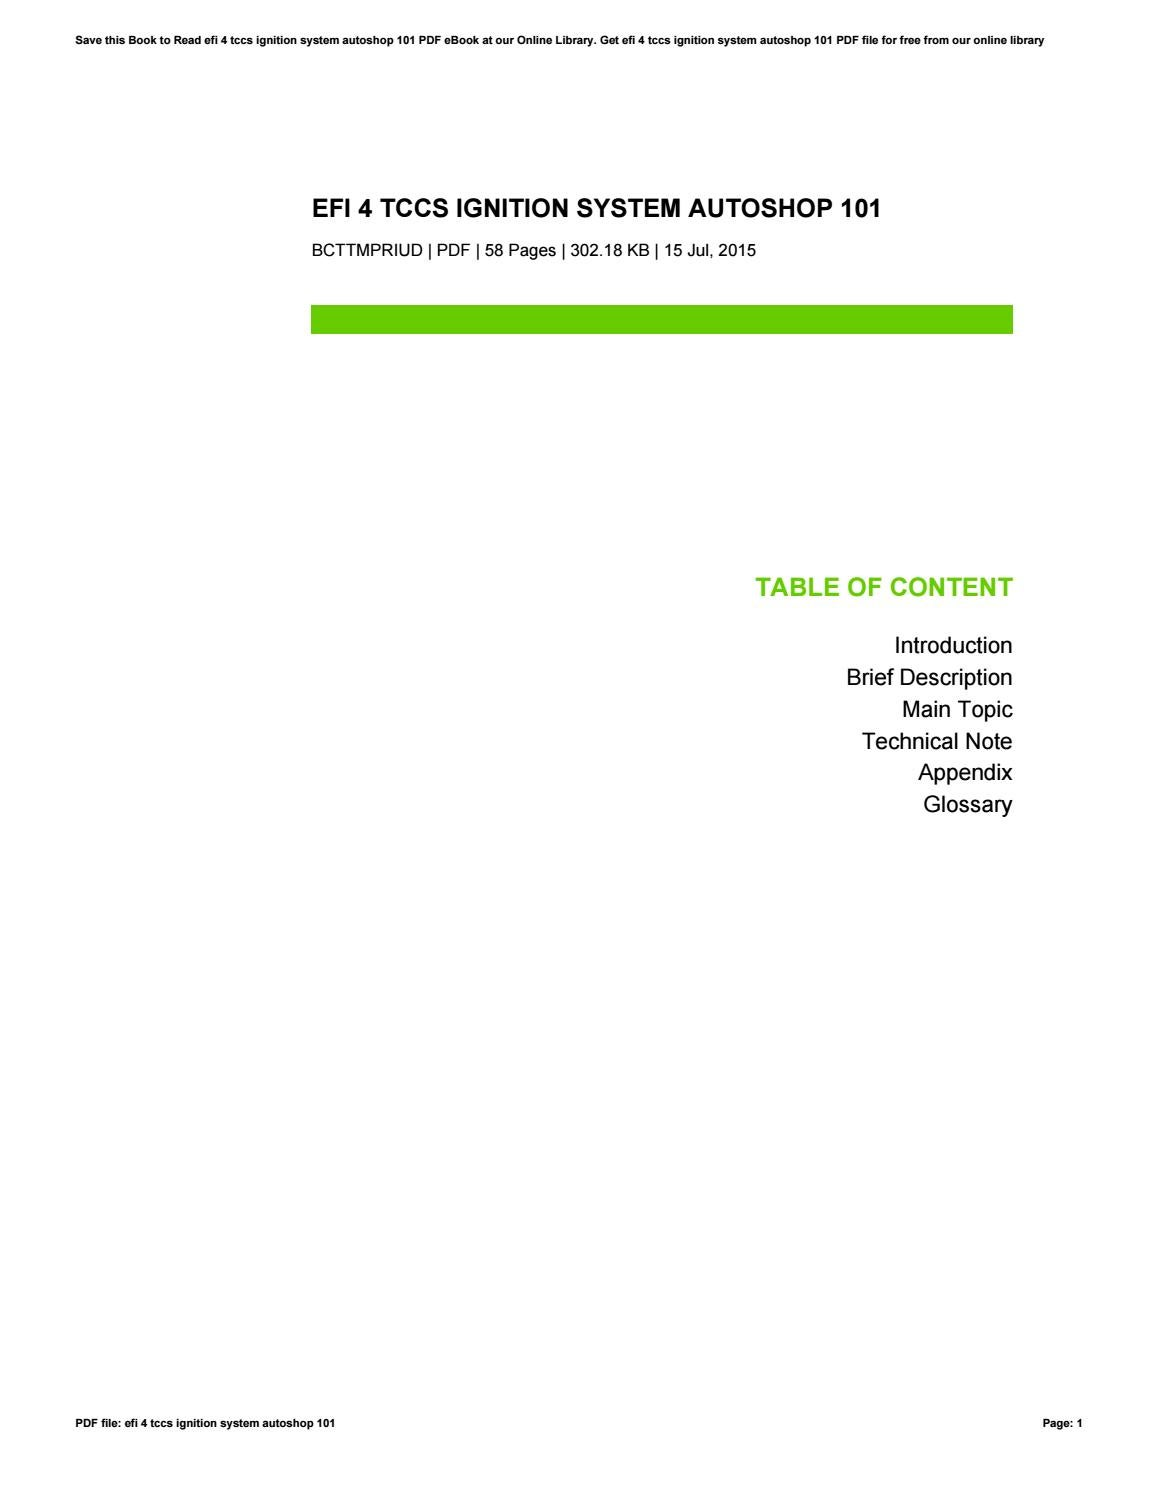 Efi 4 tccs ignition system autoshop 101 by EvelynMoodie3156 - issuu